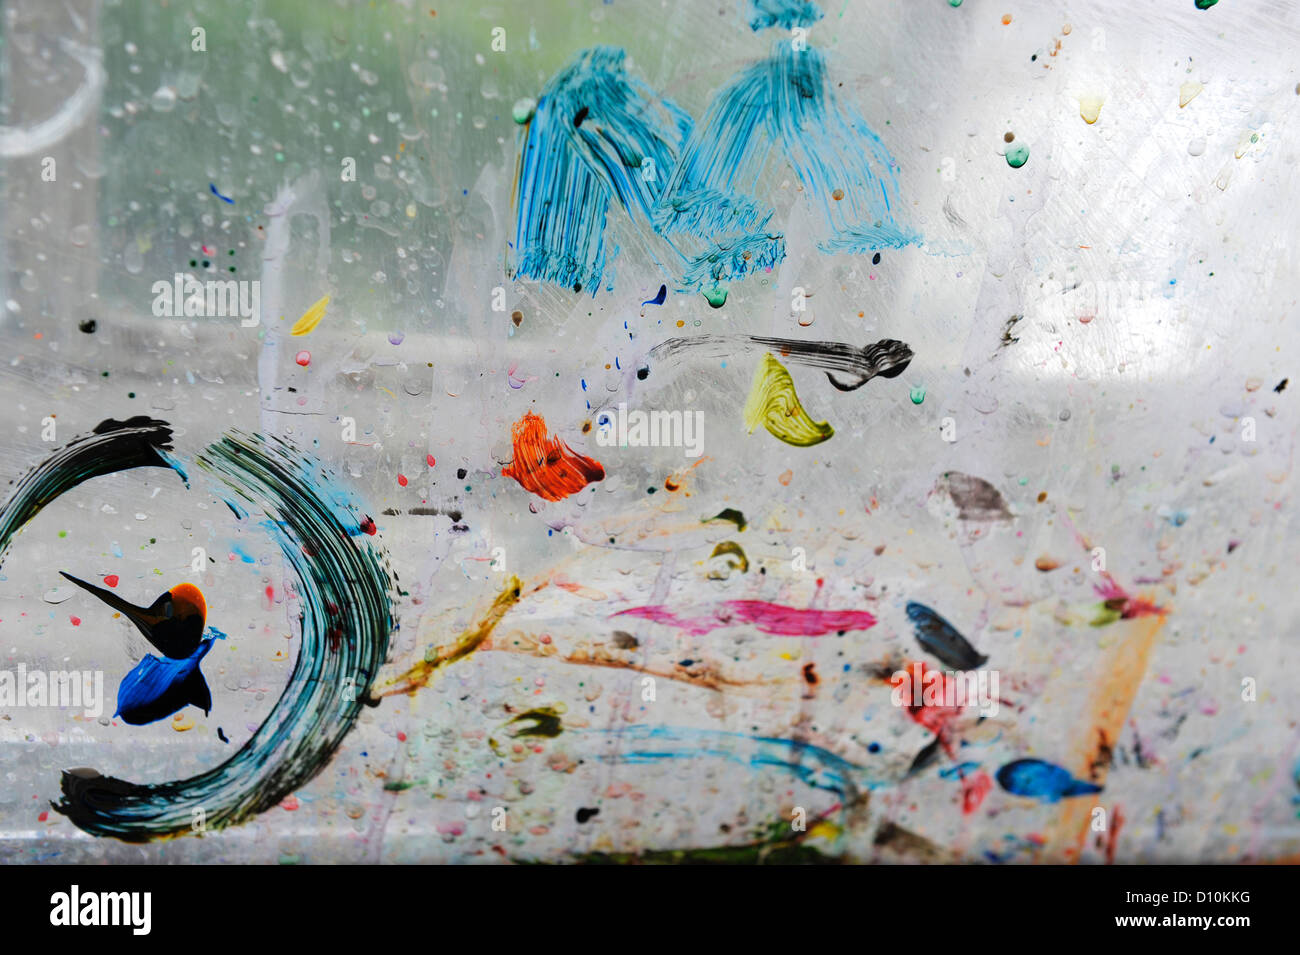 Paint spatters and brush marks on the window pane of an artists' studio - Stock Image